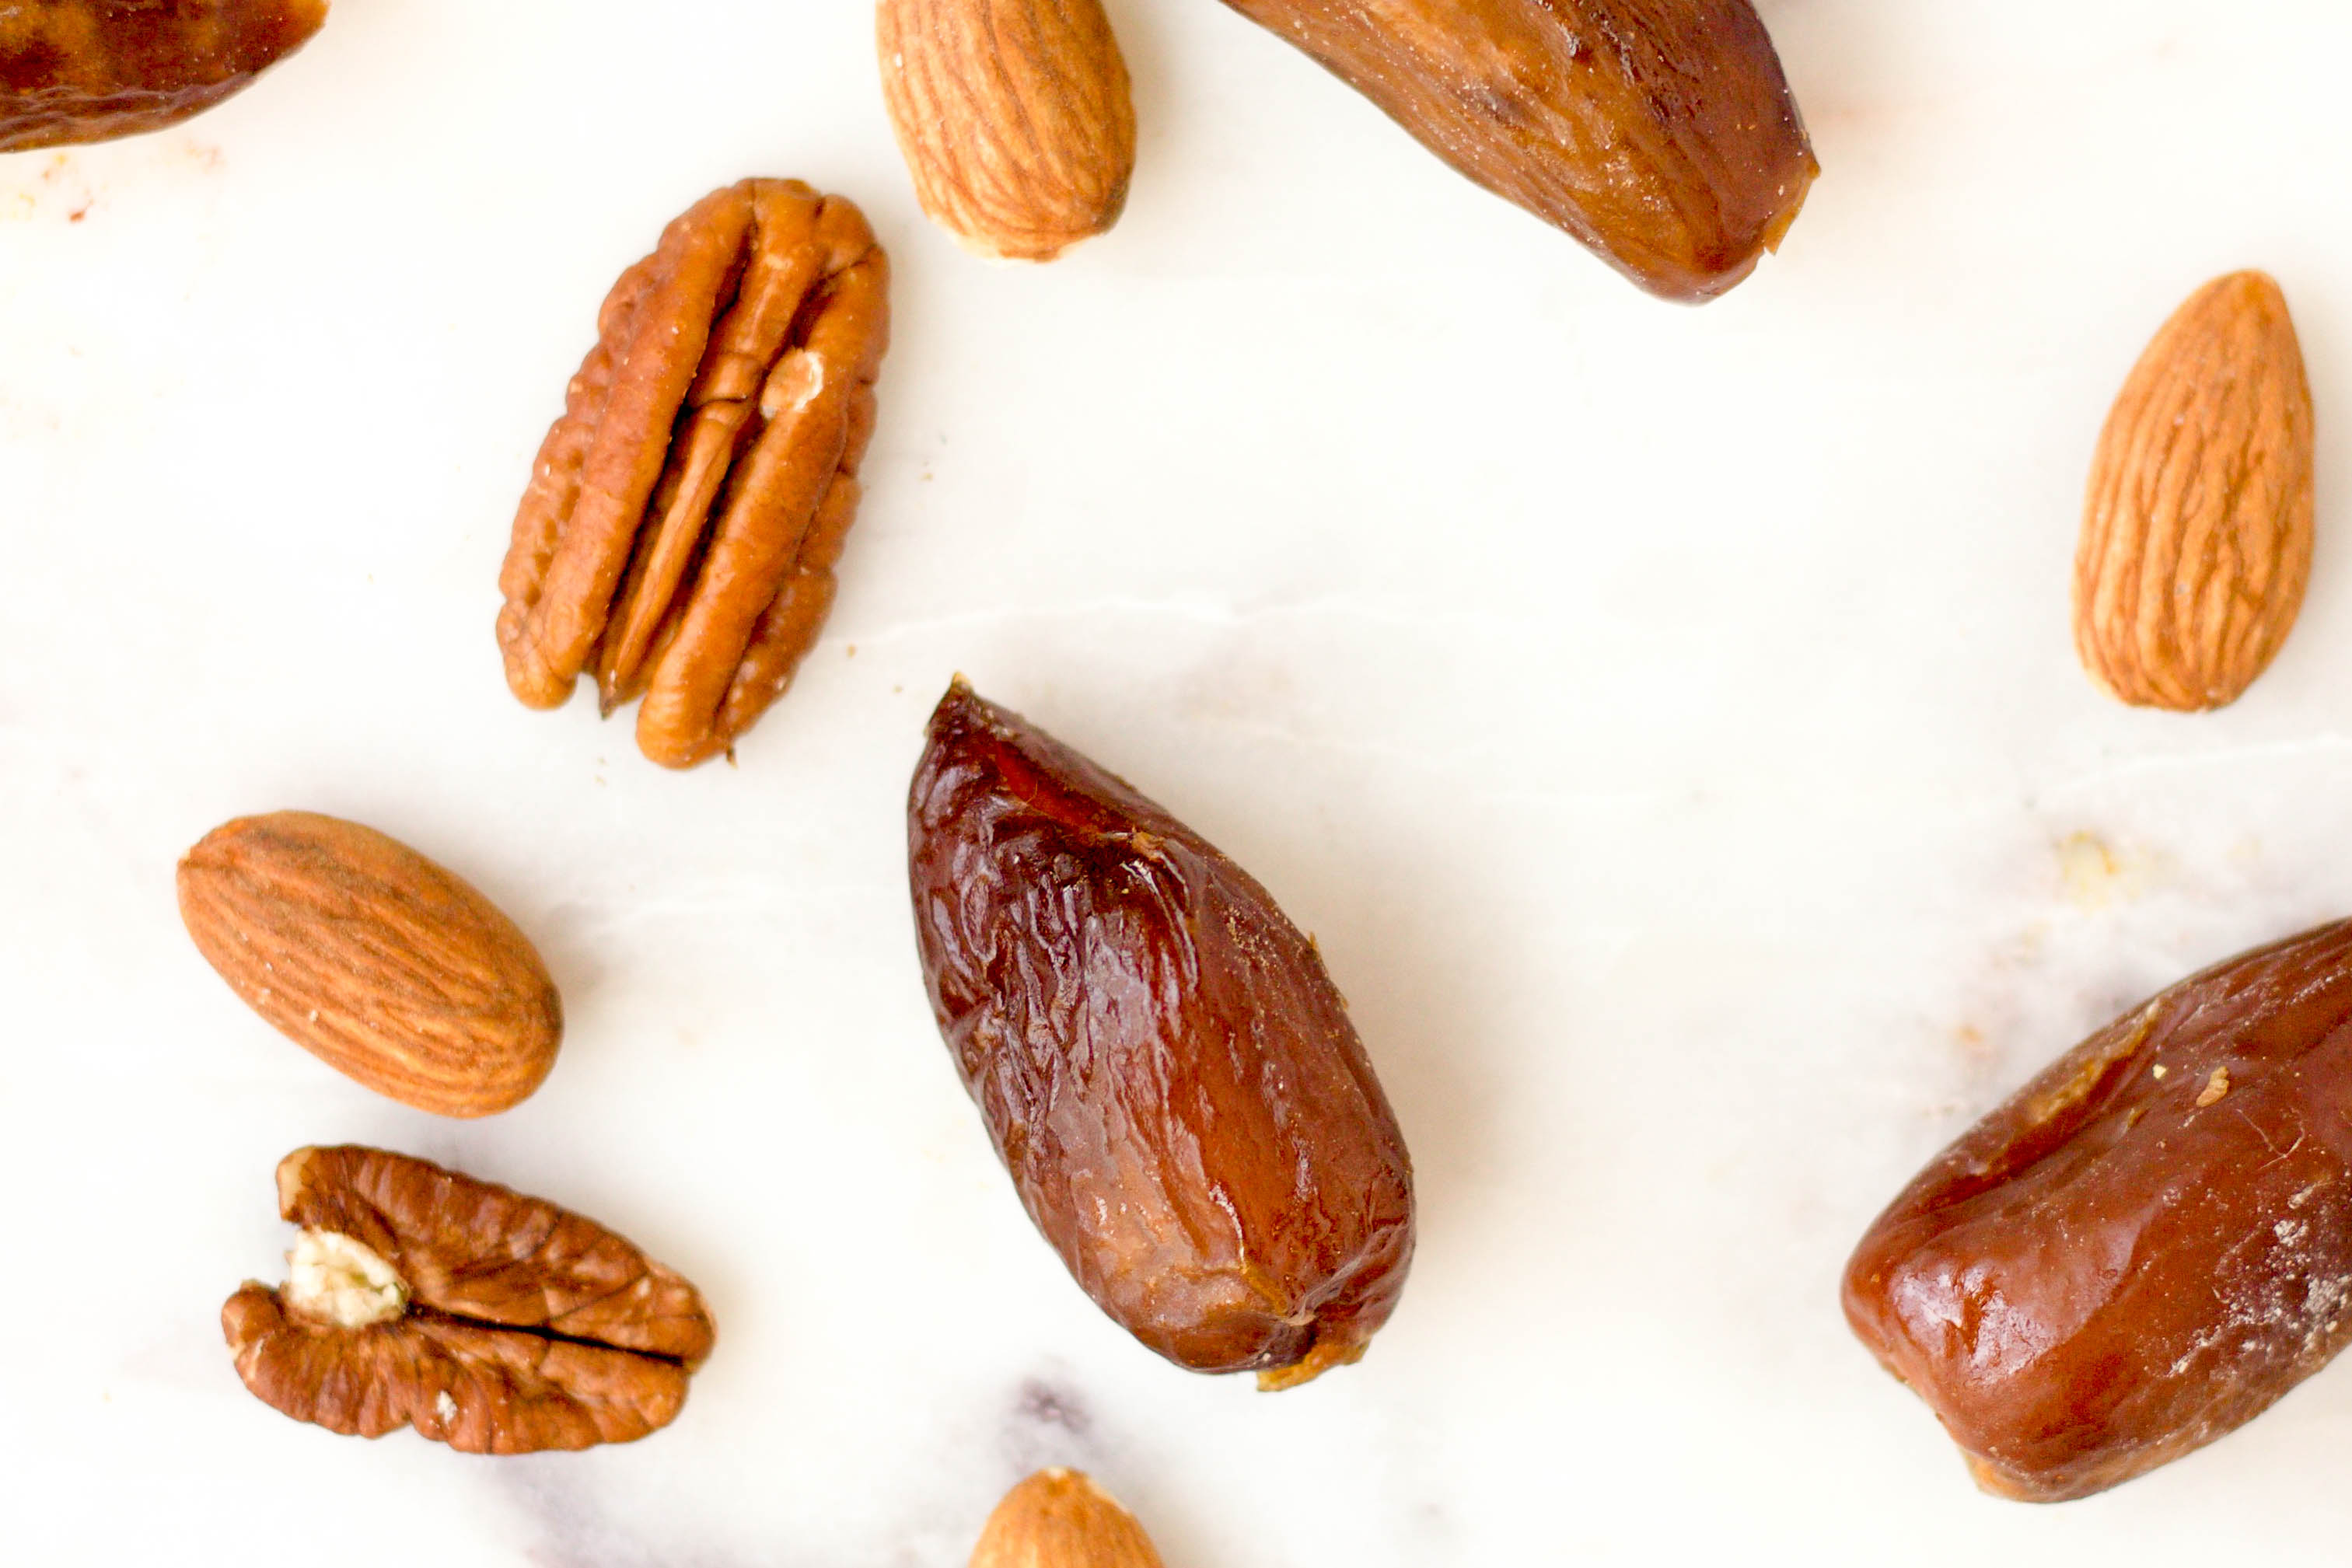 almonds, pecans, and medjool dates